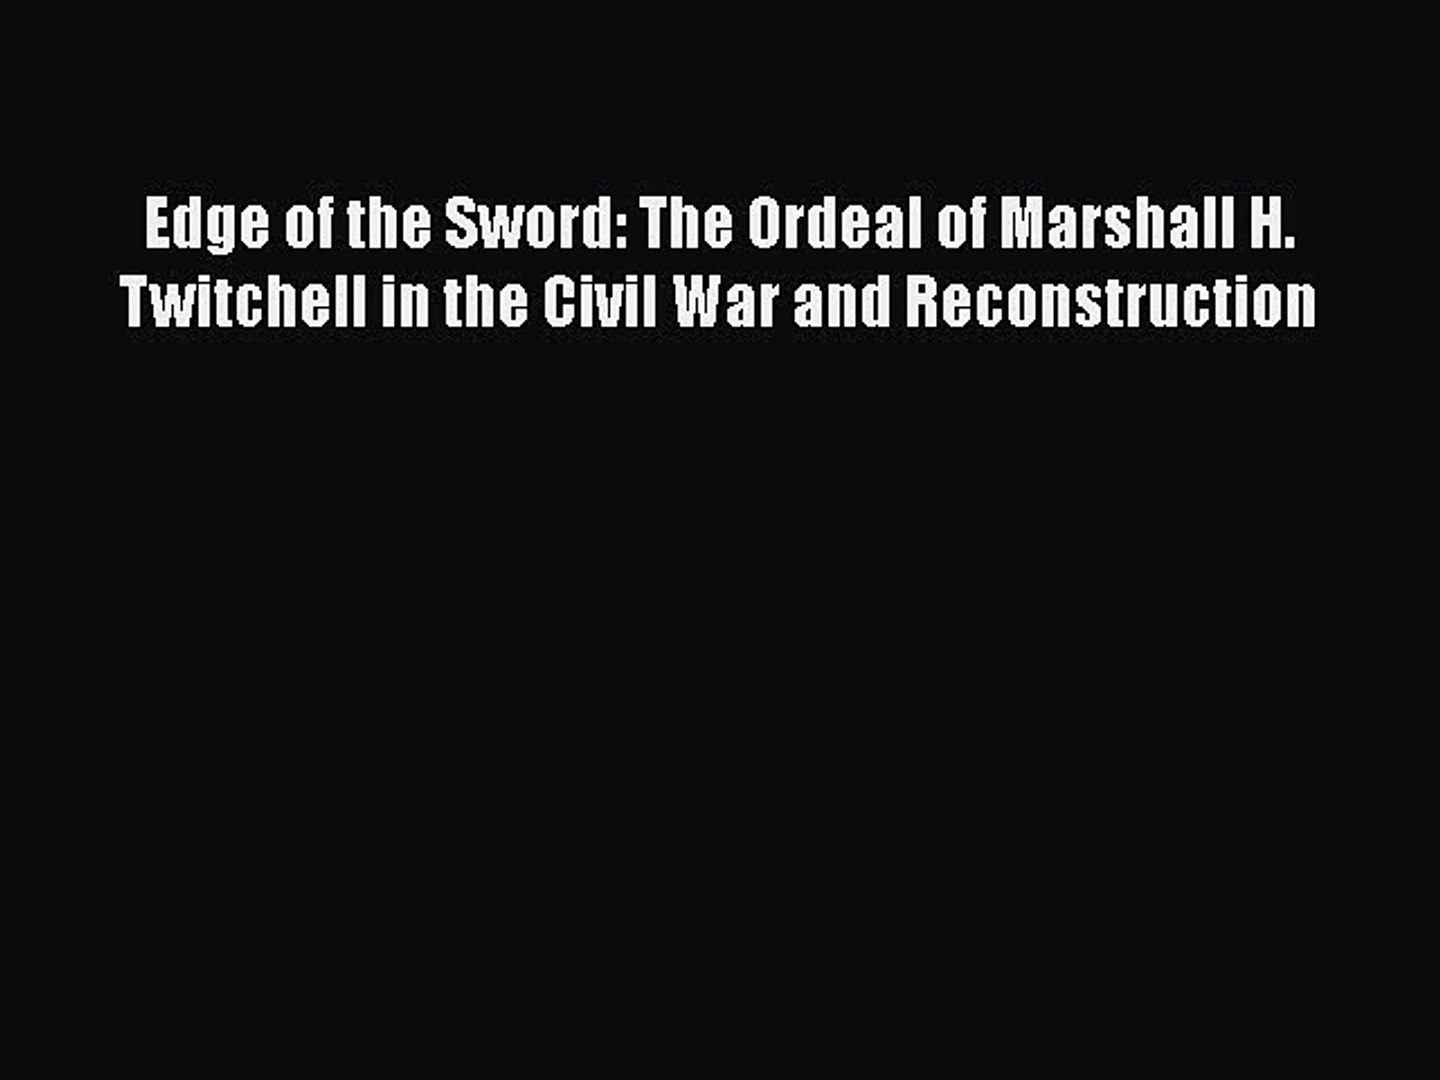 Download Edge of the Sword: The Ordeal of Marshall H. Twitchell in the Civil War and Reconstruction